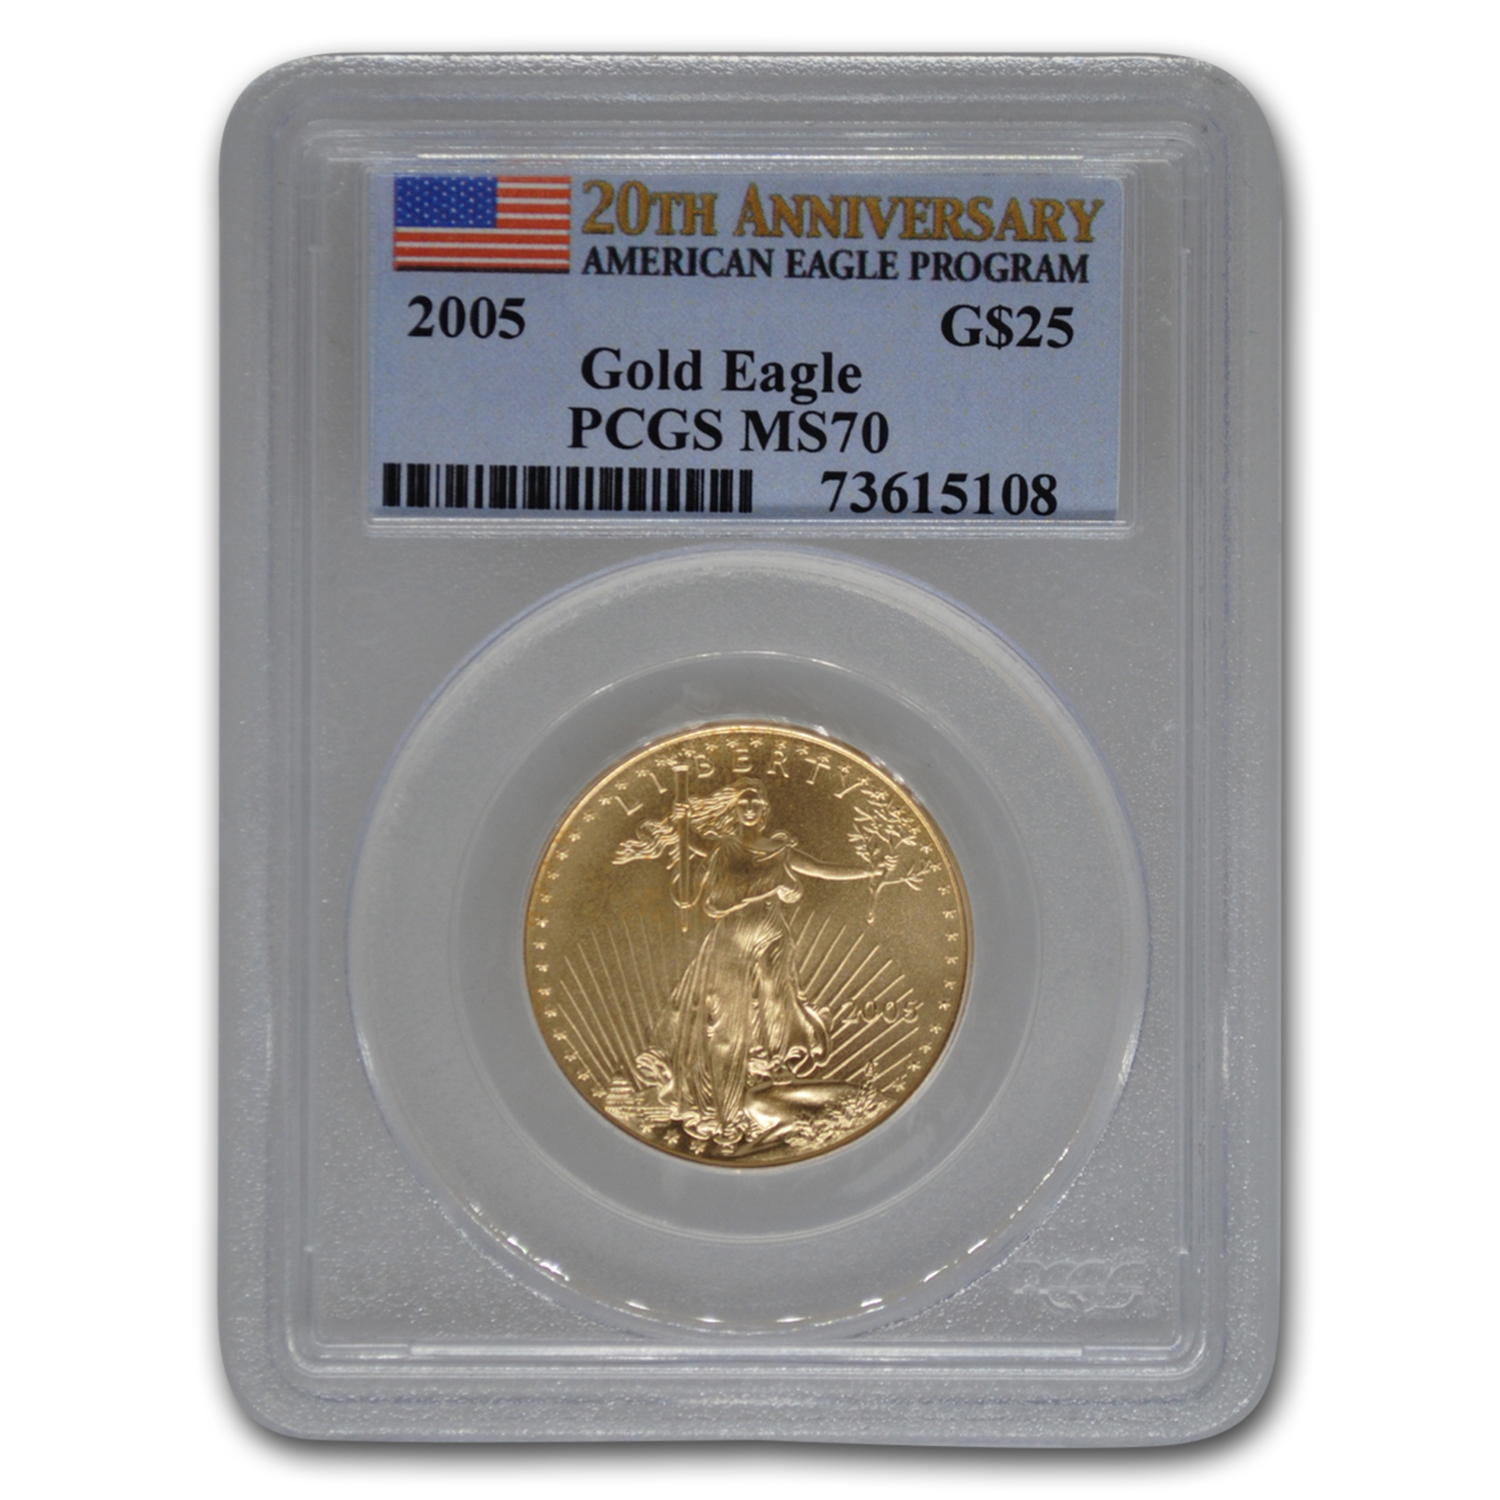 2005 1/2 oz Gold American Eagle MS-70 PCGS (20th Anniversary)